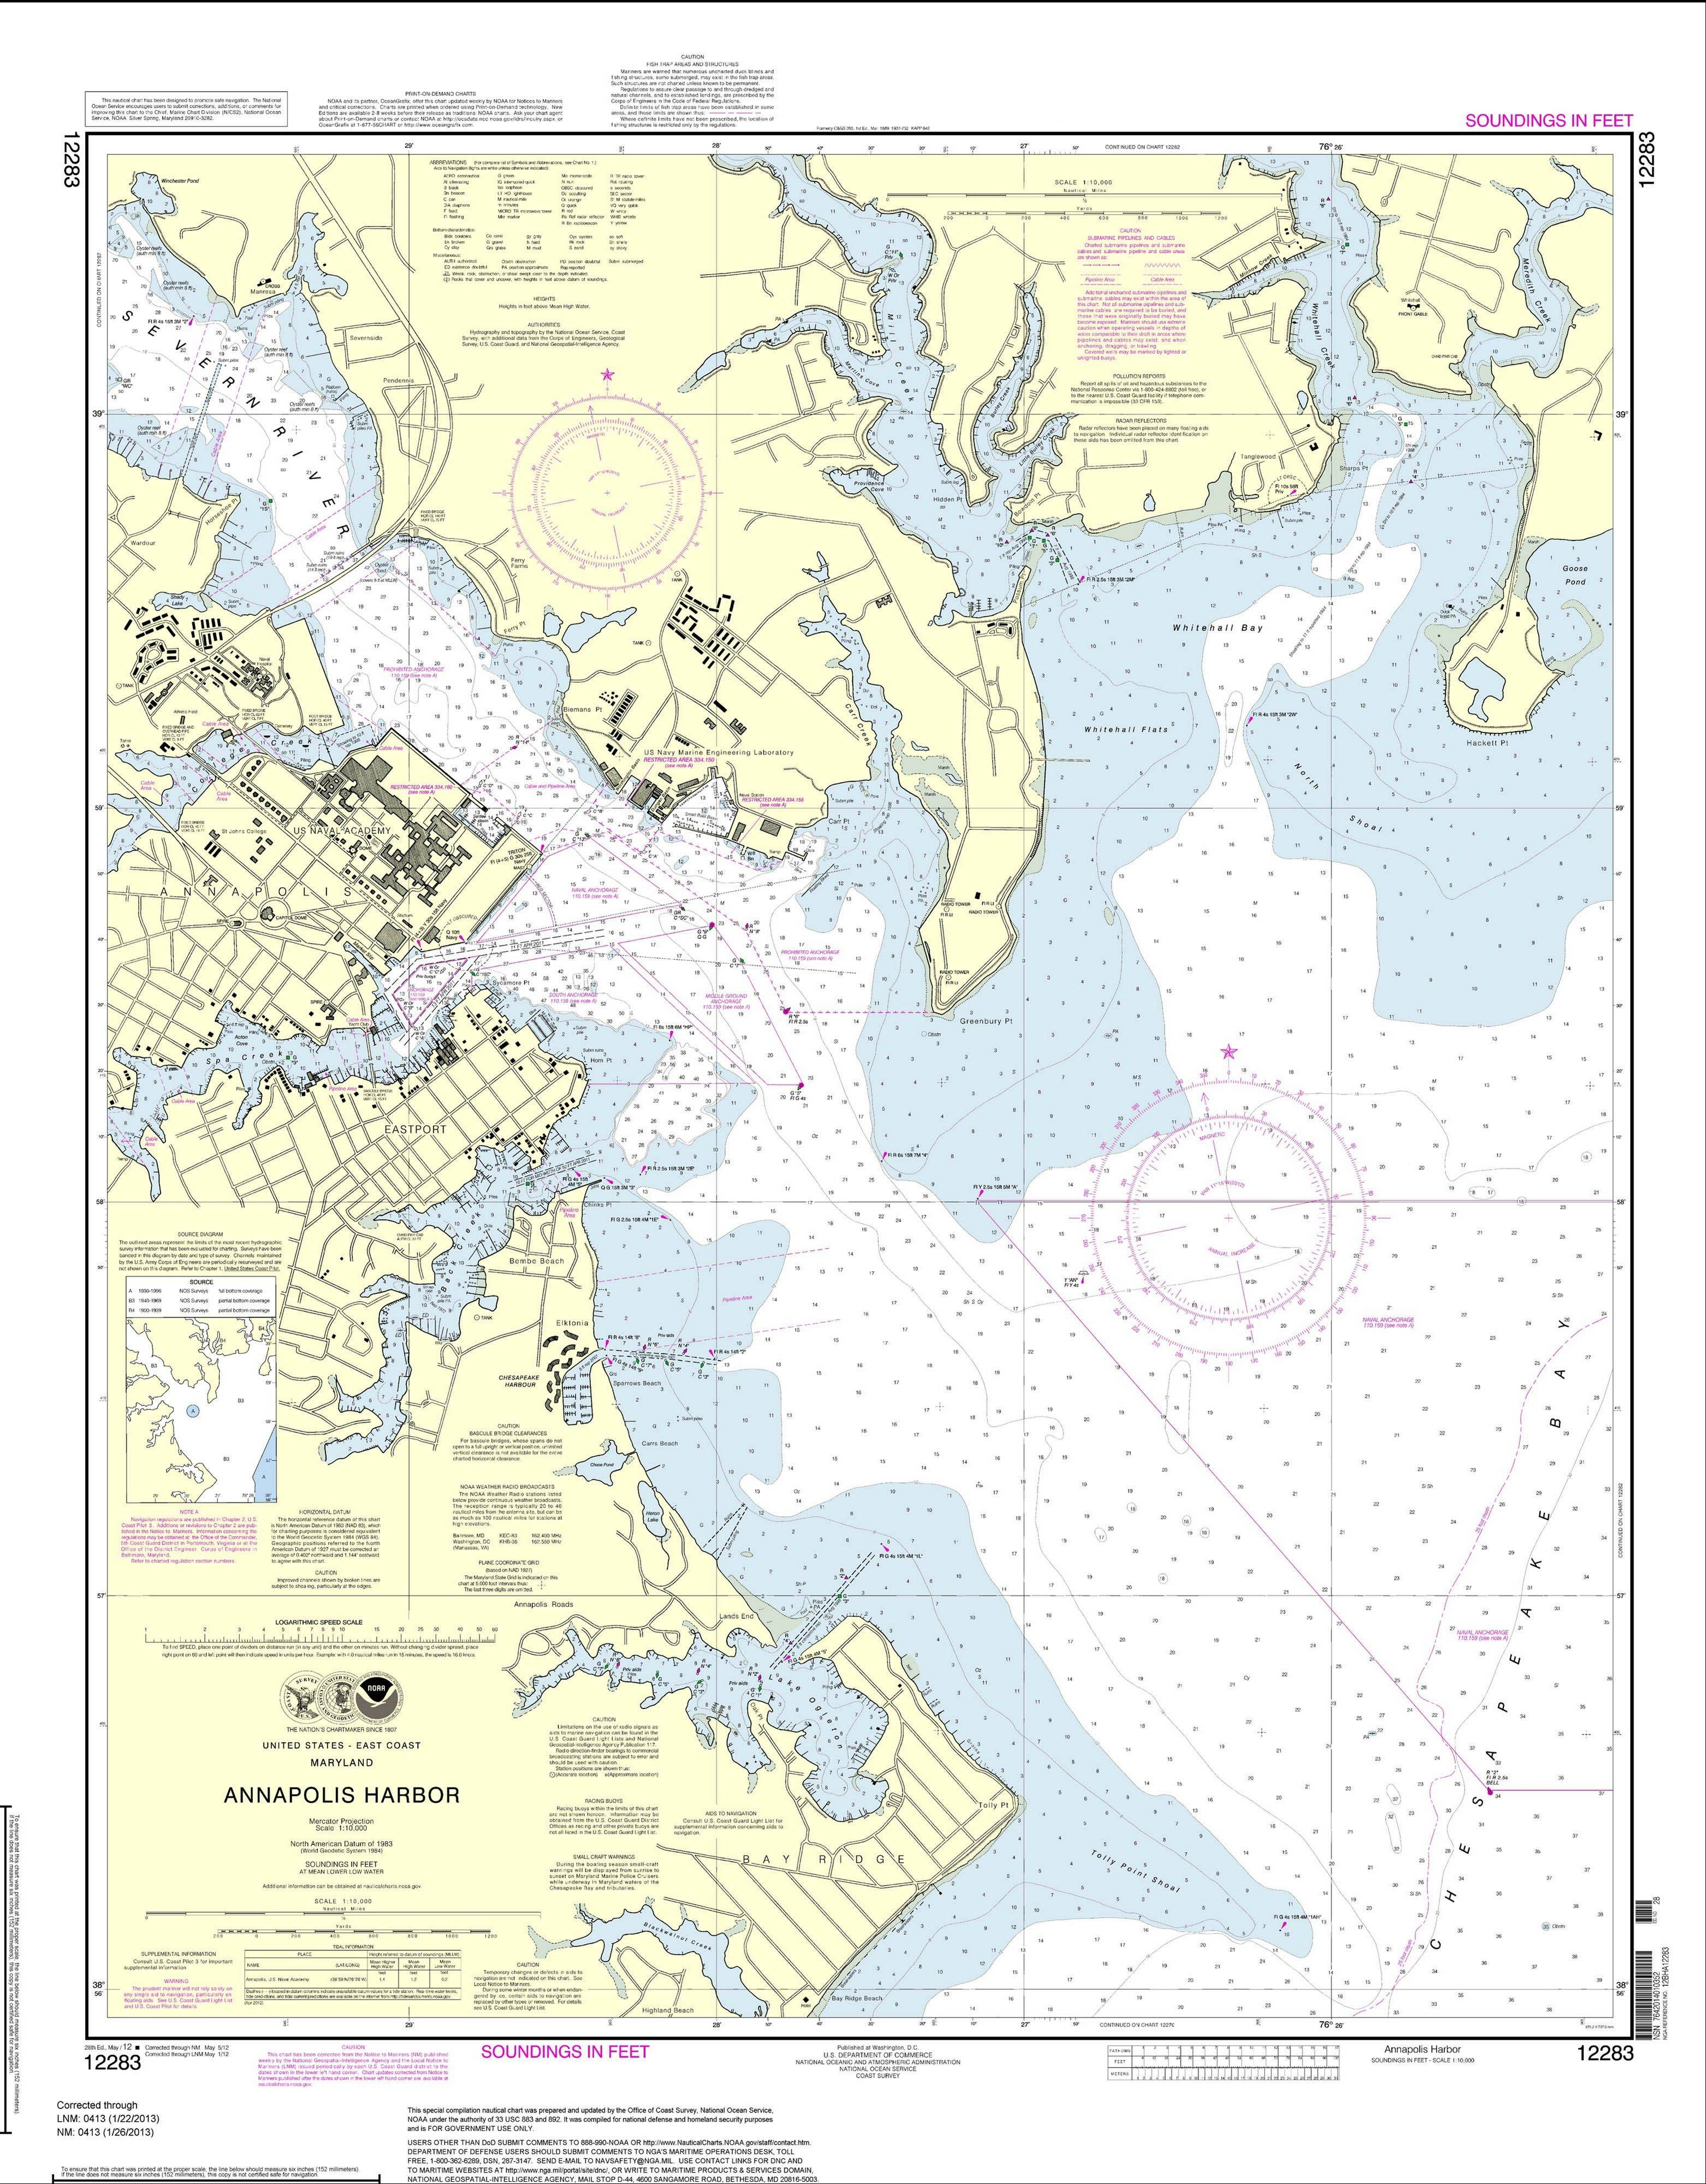 This is a print-on-demand nautical chart for Annapolis Harbor. The National Oceanic and Atmospheric Administration said Tuesday the traditional heavy paper lithographic nautical charts will stop being printed next April.